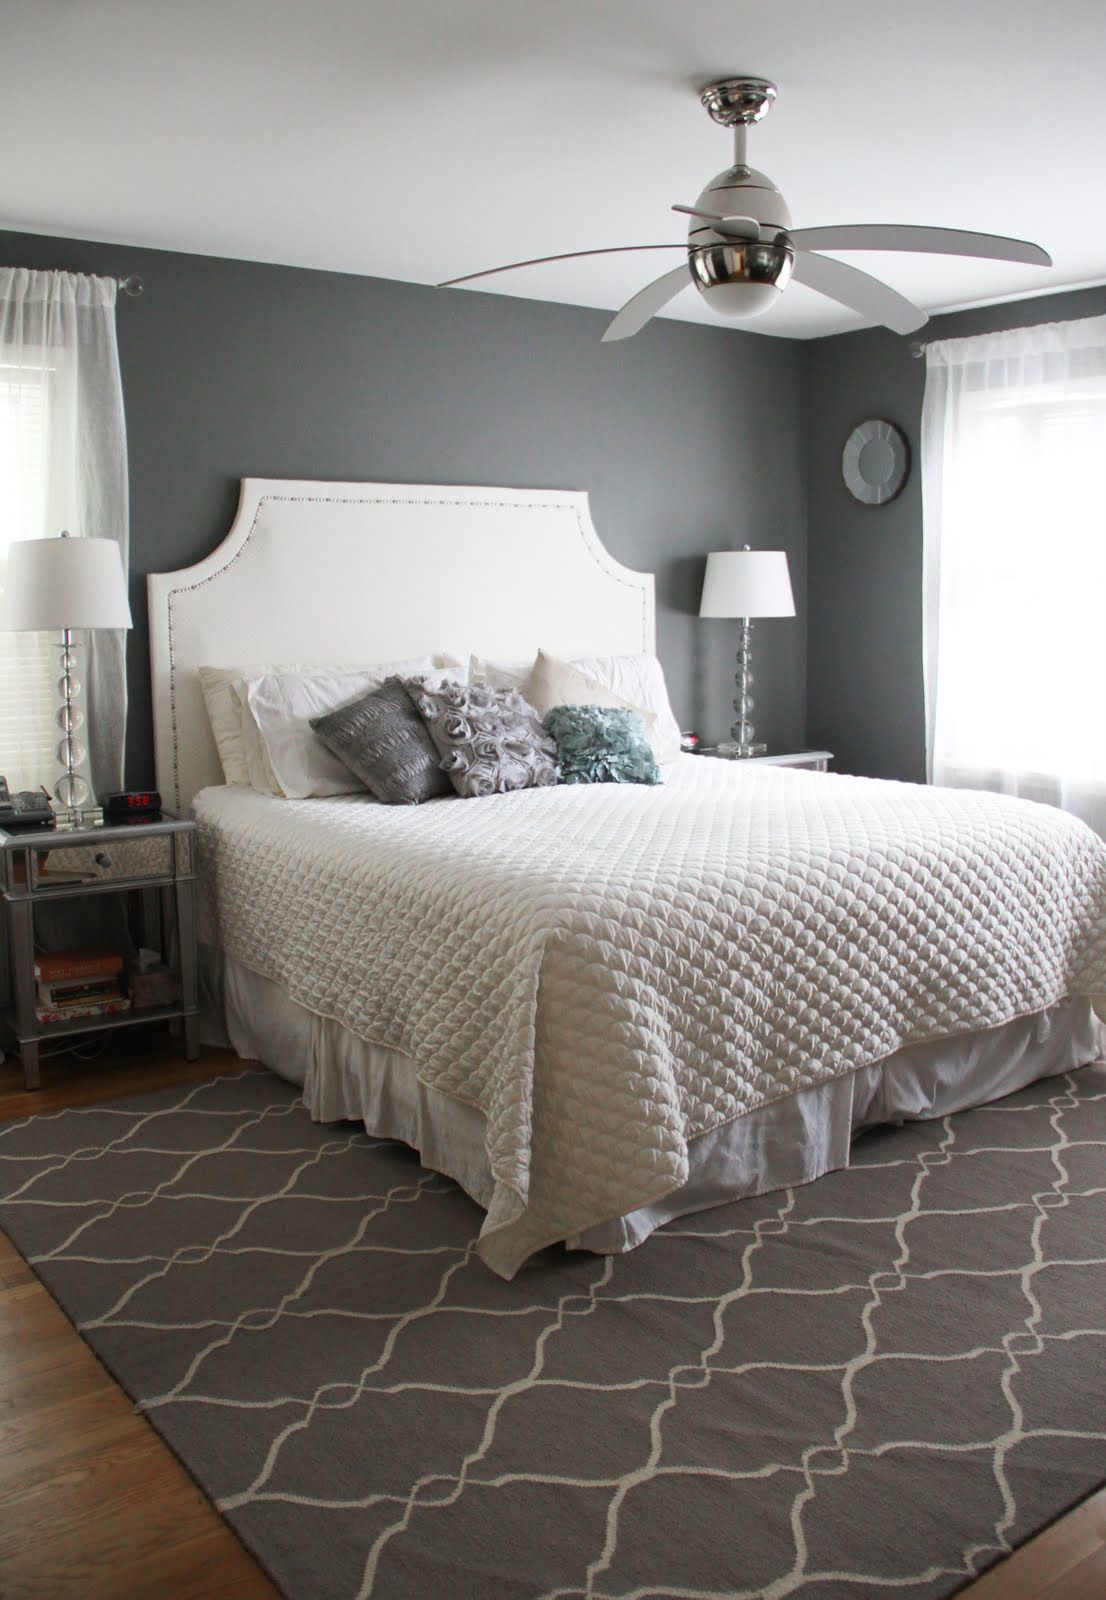 grey & metallic bedroom makeover - before & after | oakland house